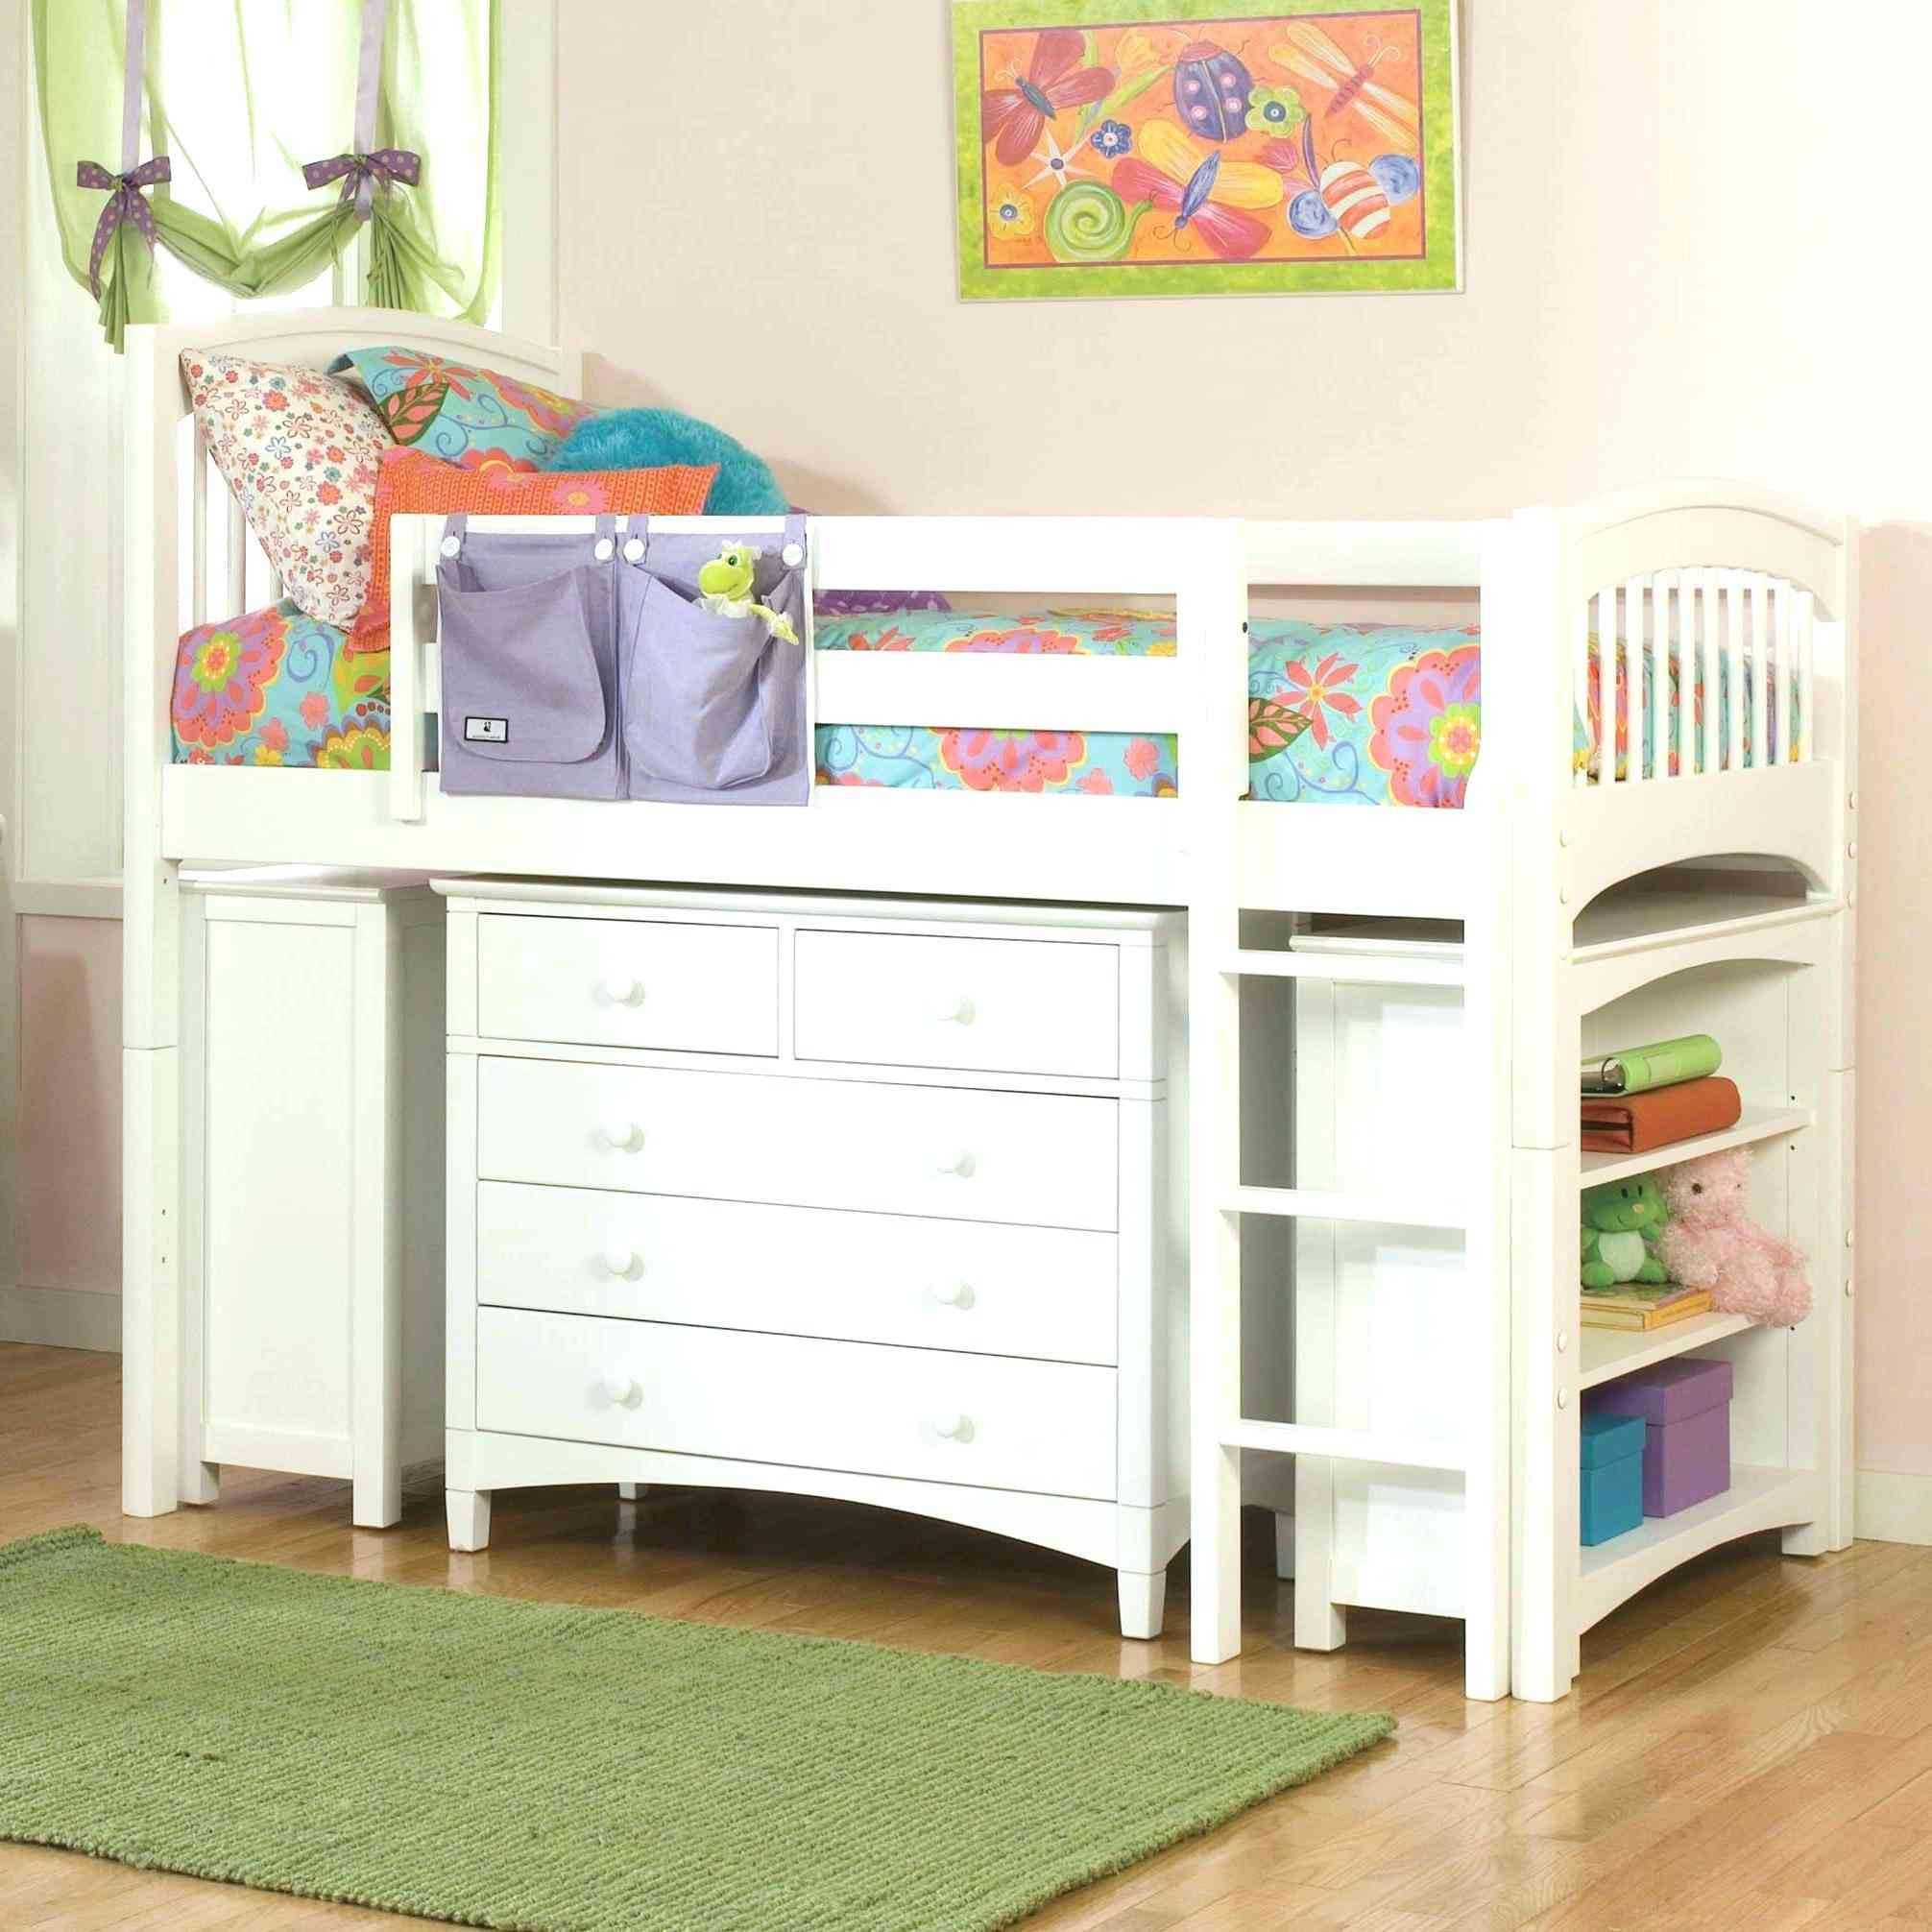 Queen Bedroom Set Ikea Unique Bedroom Charming Roomstogokids with Beautiful Decor for